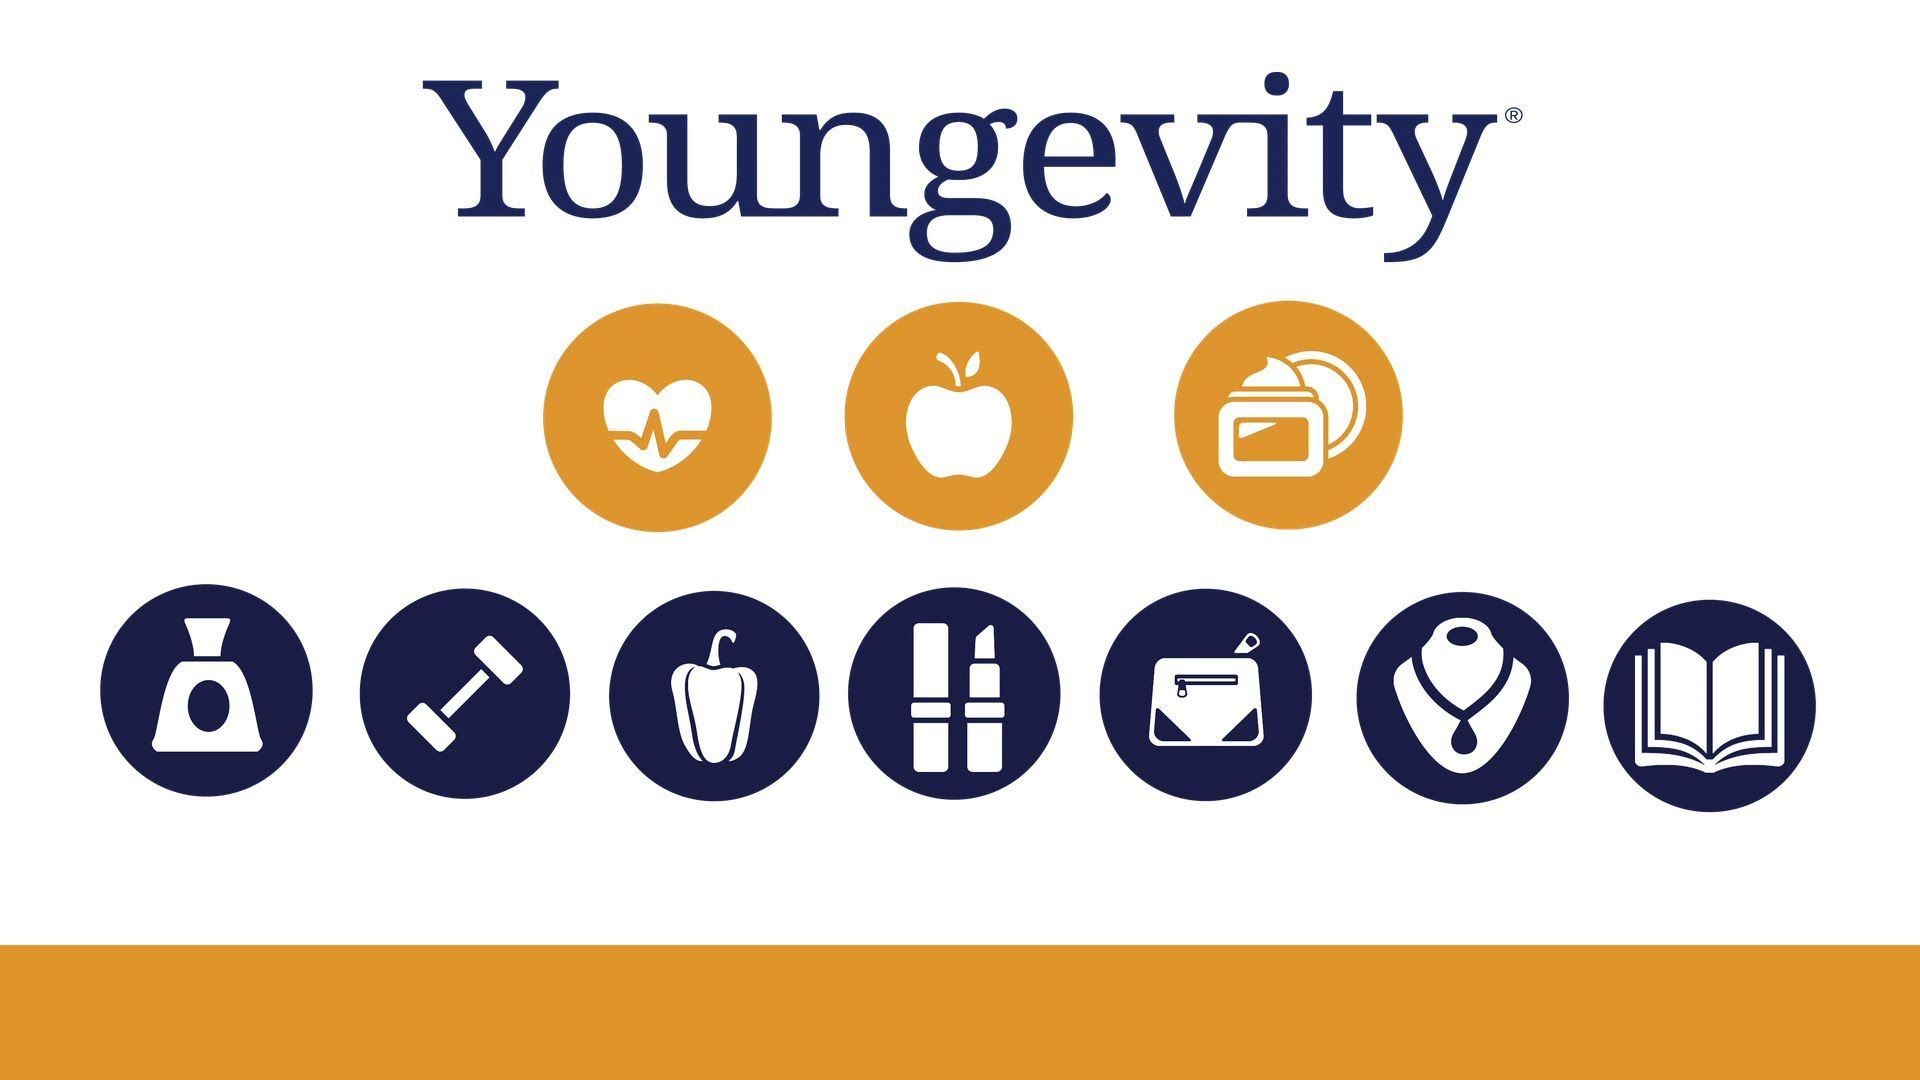 How To Make Money With Youngevity